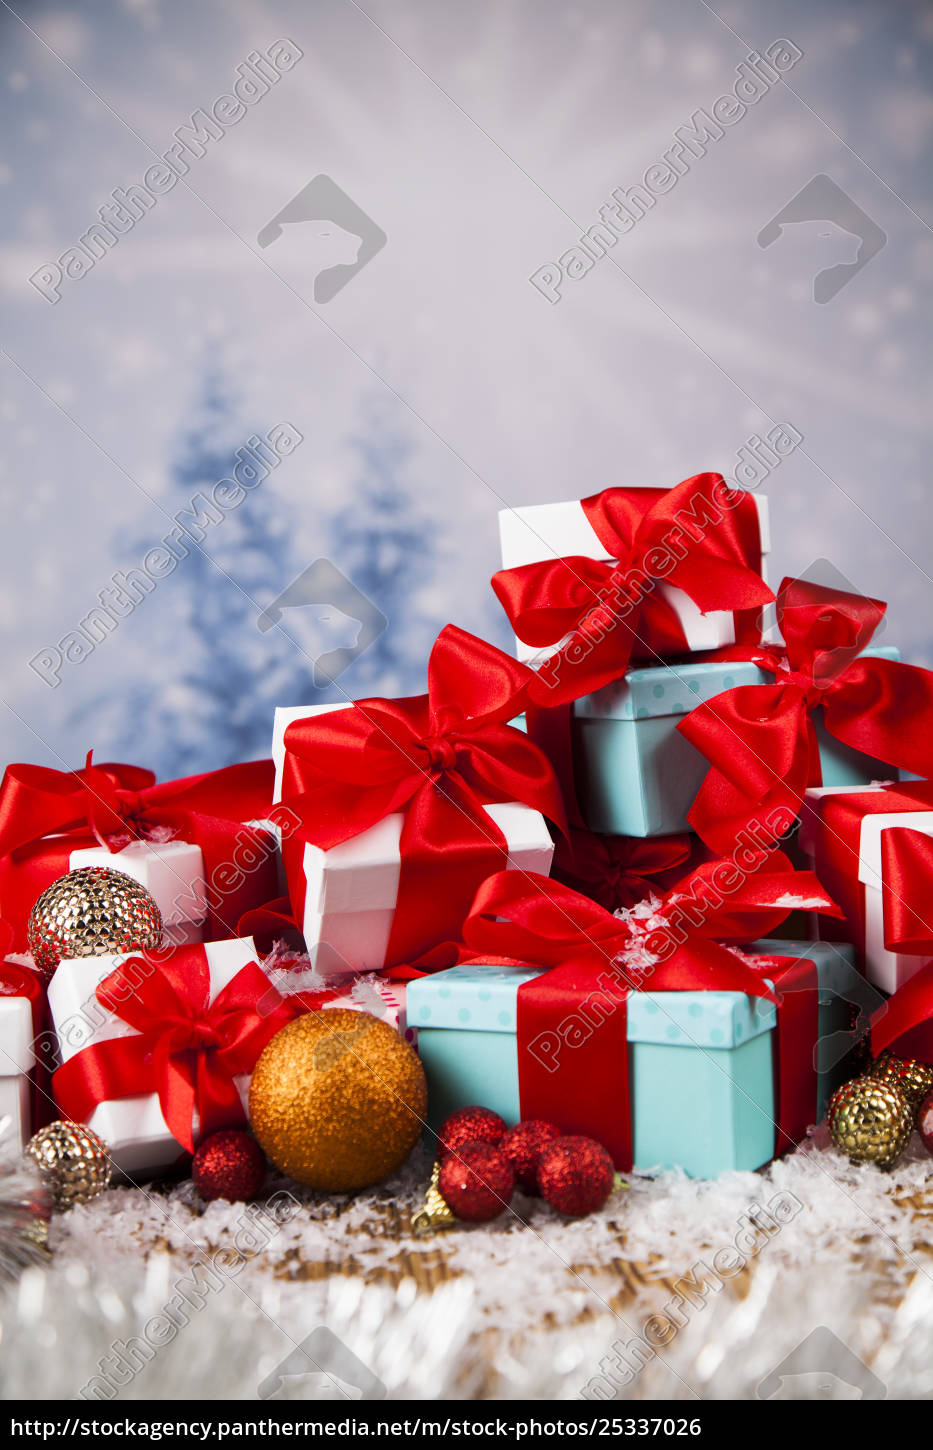 christmastime, celebration, , gift, box, with, red - 25337026